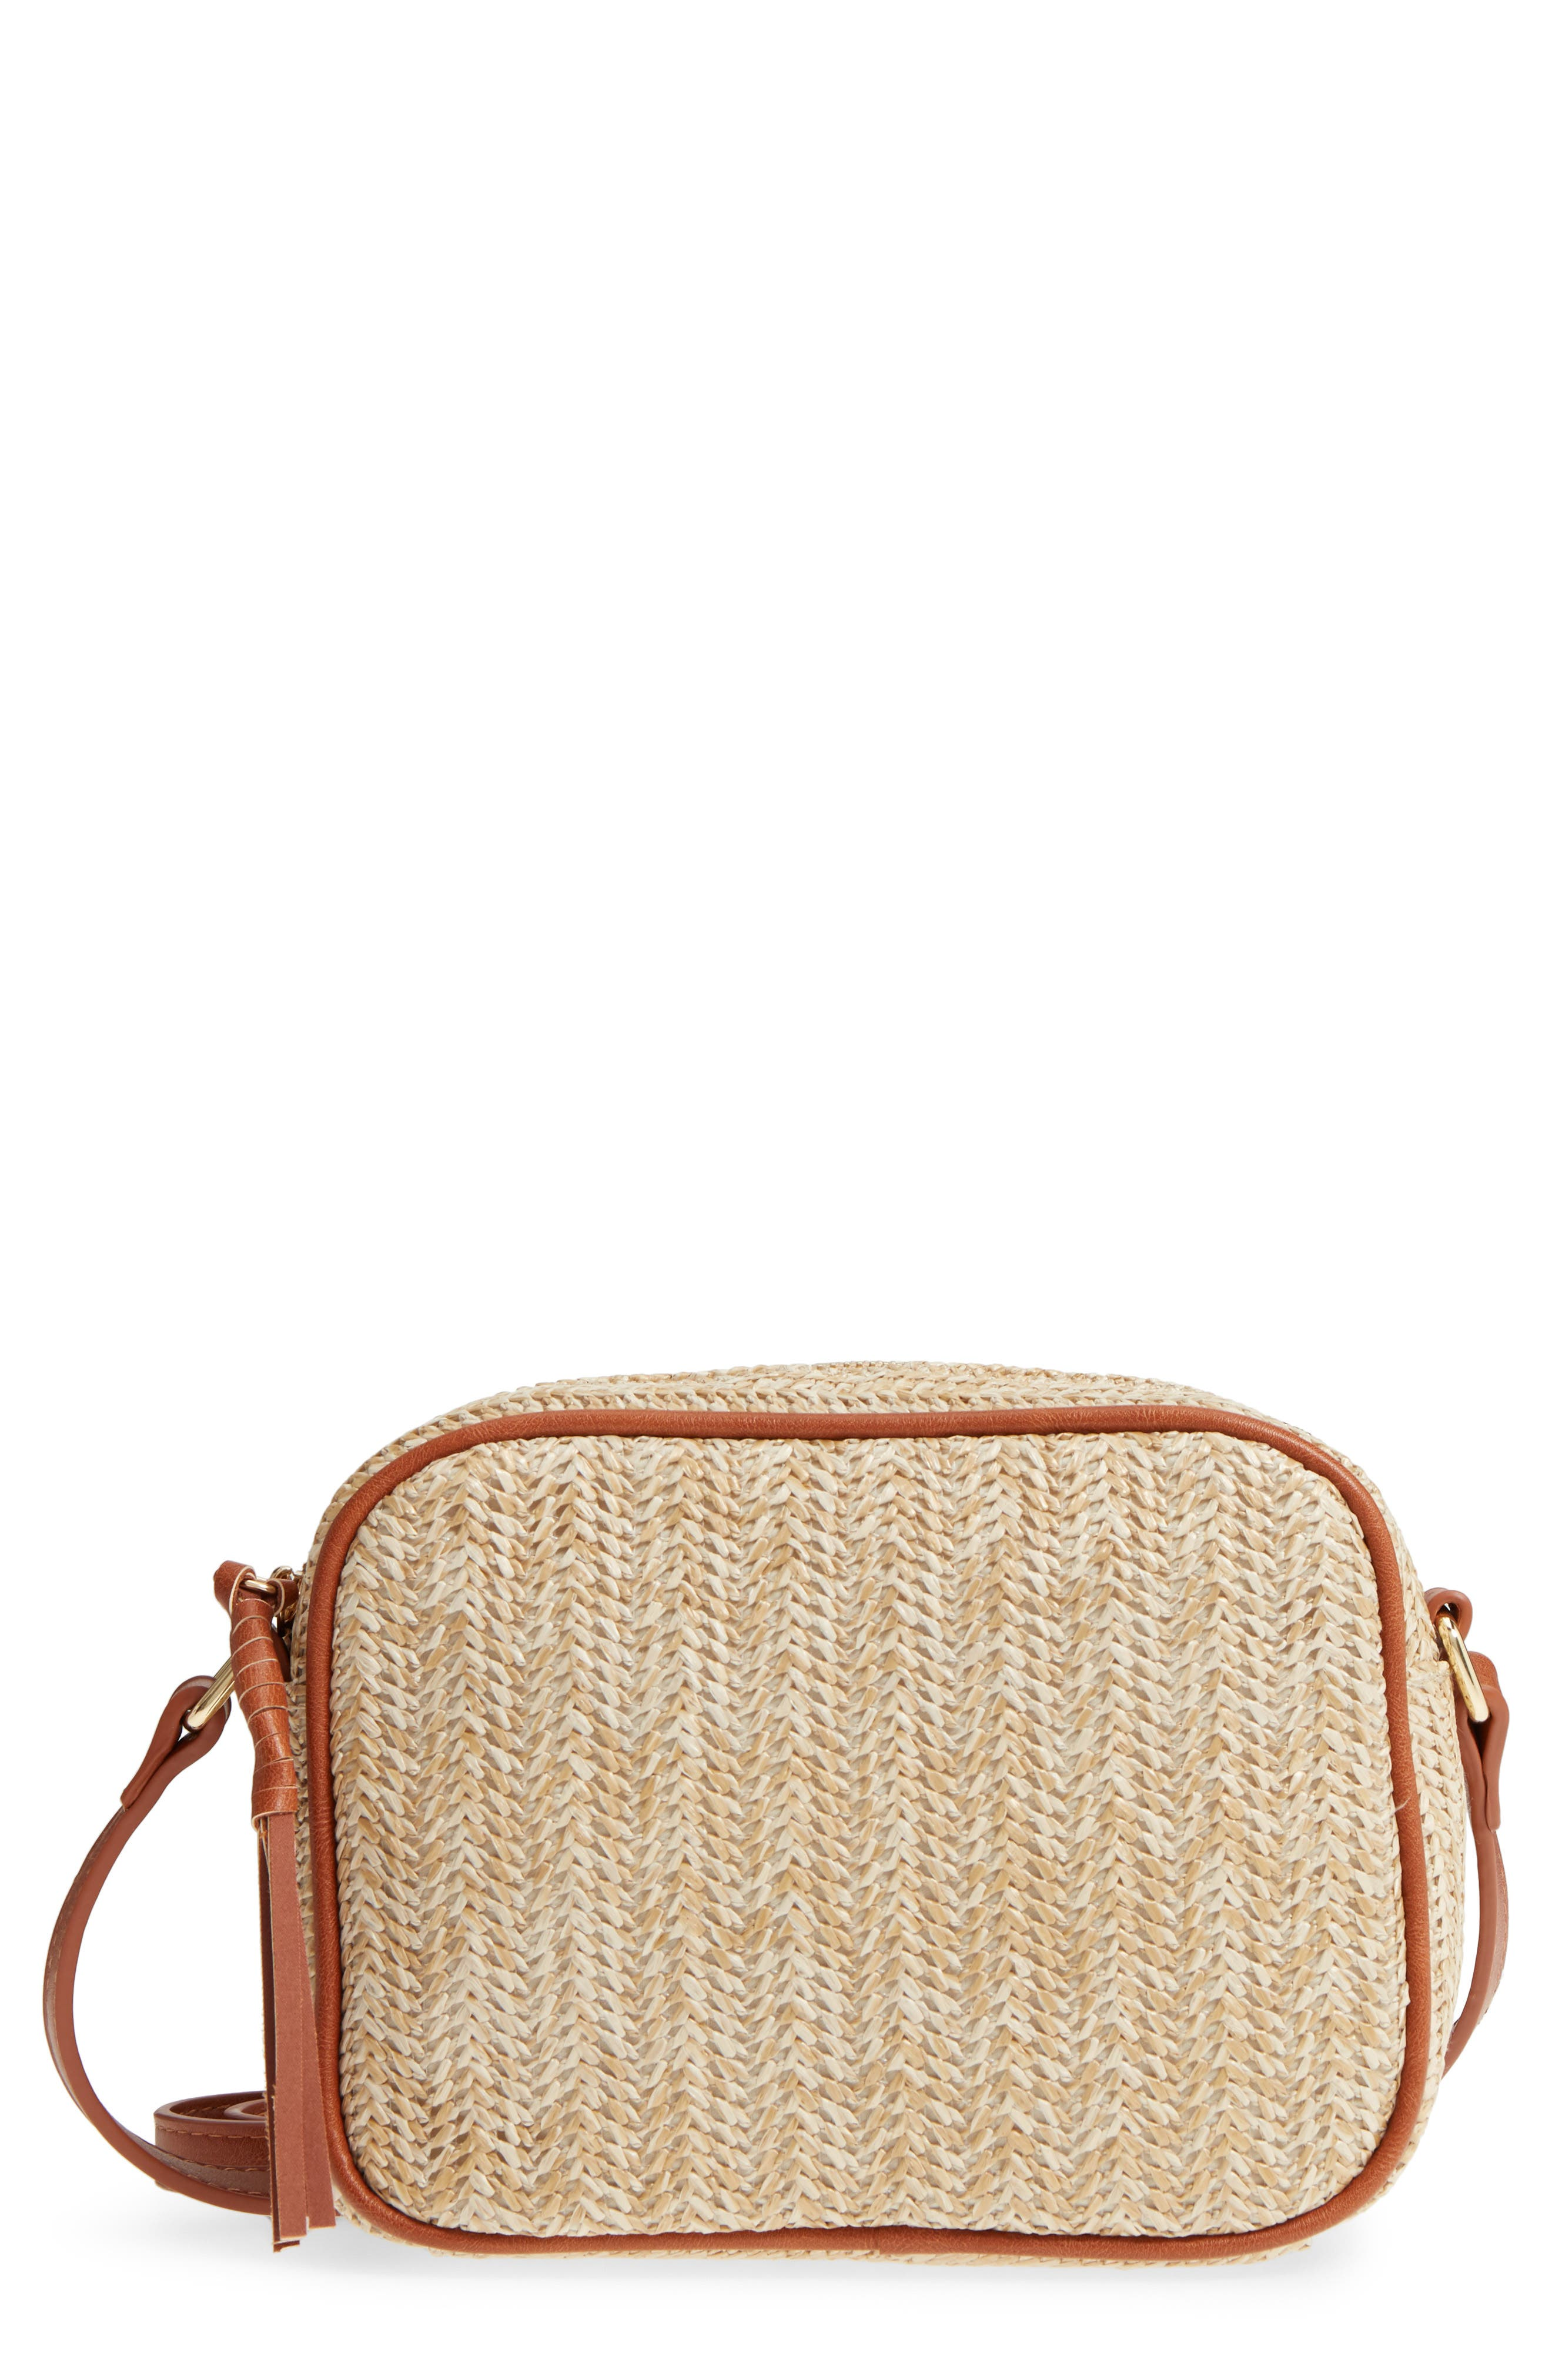 Pipper Faux Leather Camera Bag,                         Main,                         color, Natural